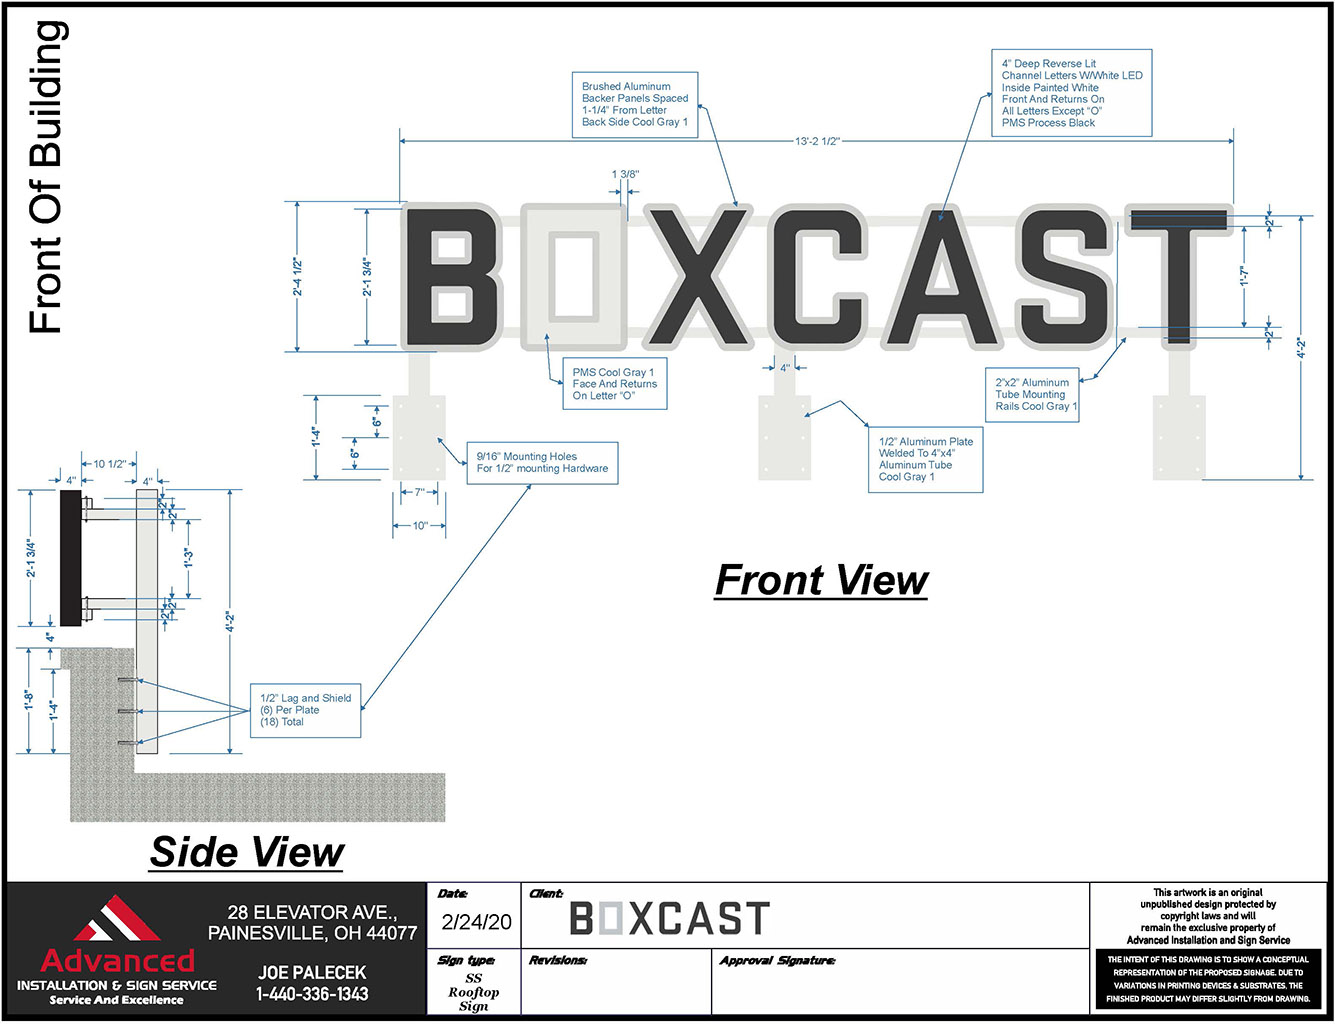 Boxcast_Signs_IMG_01.jpg